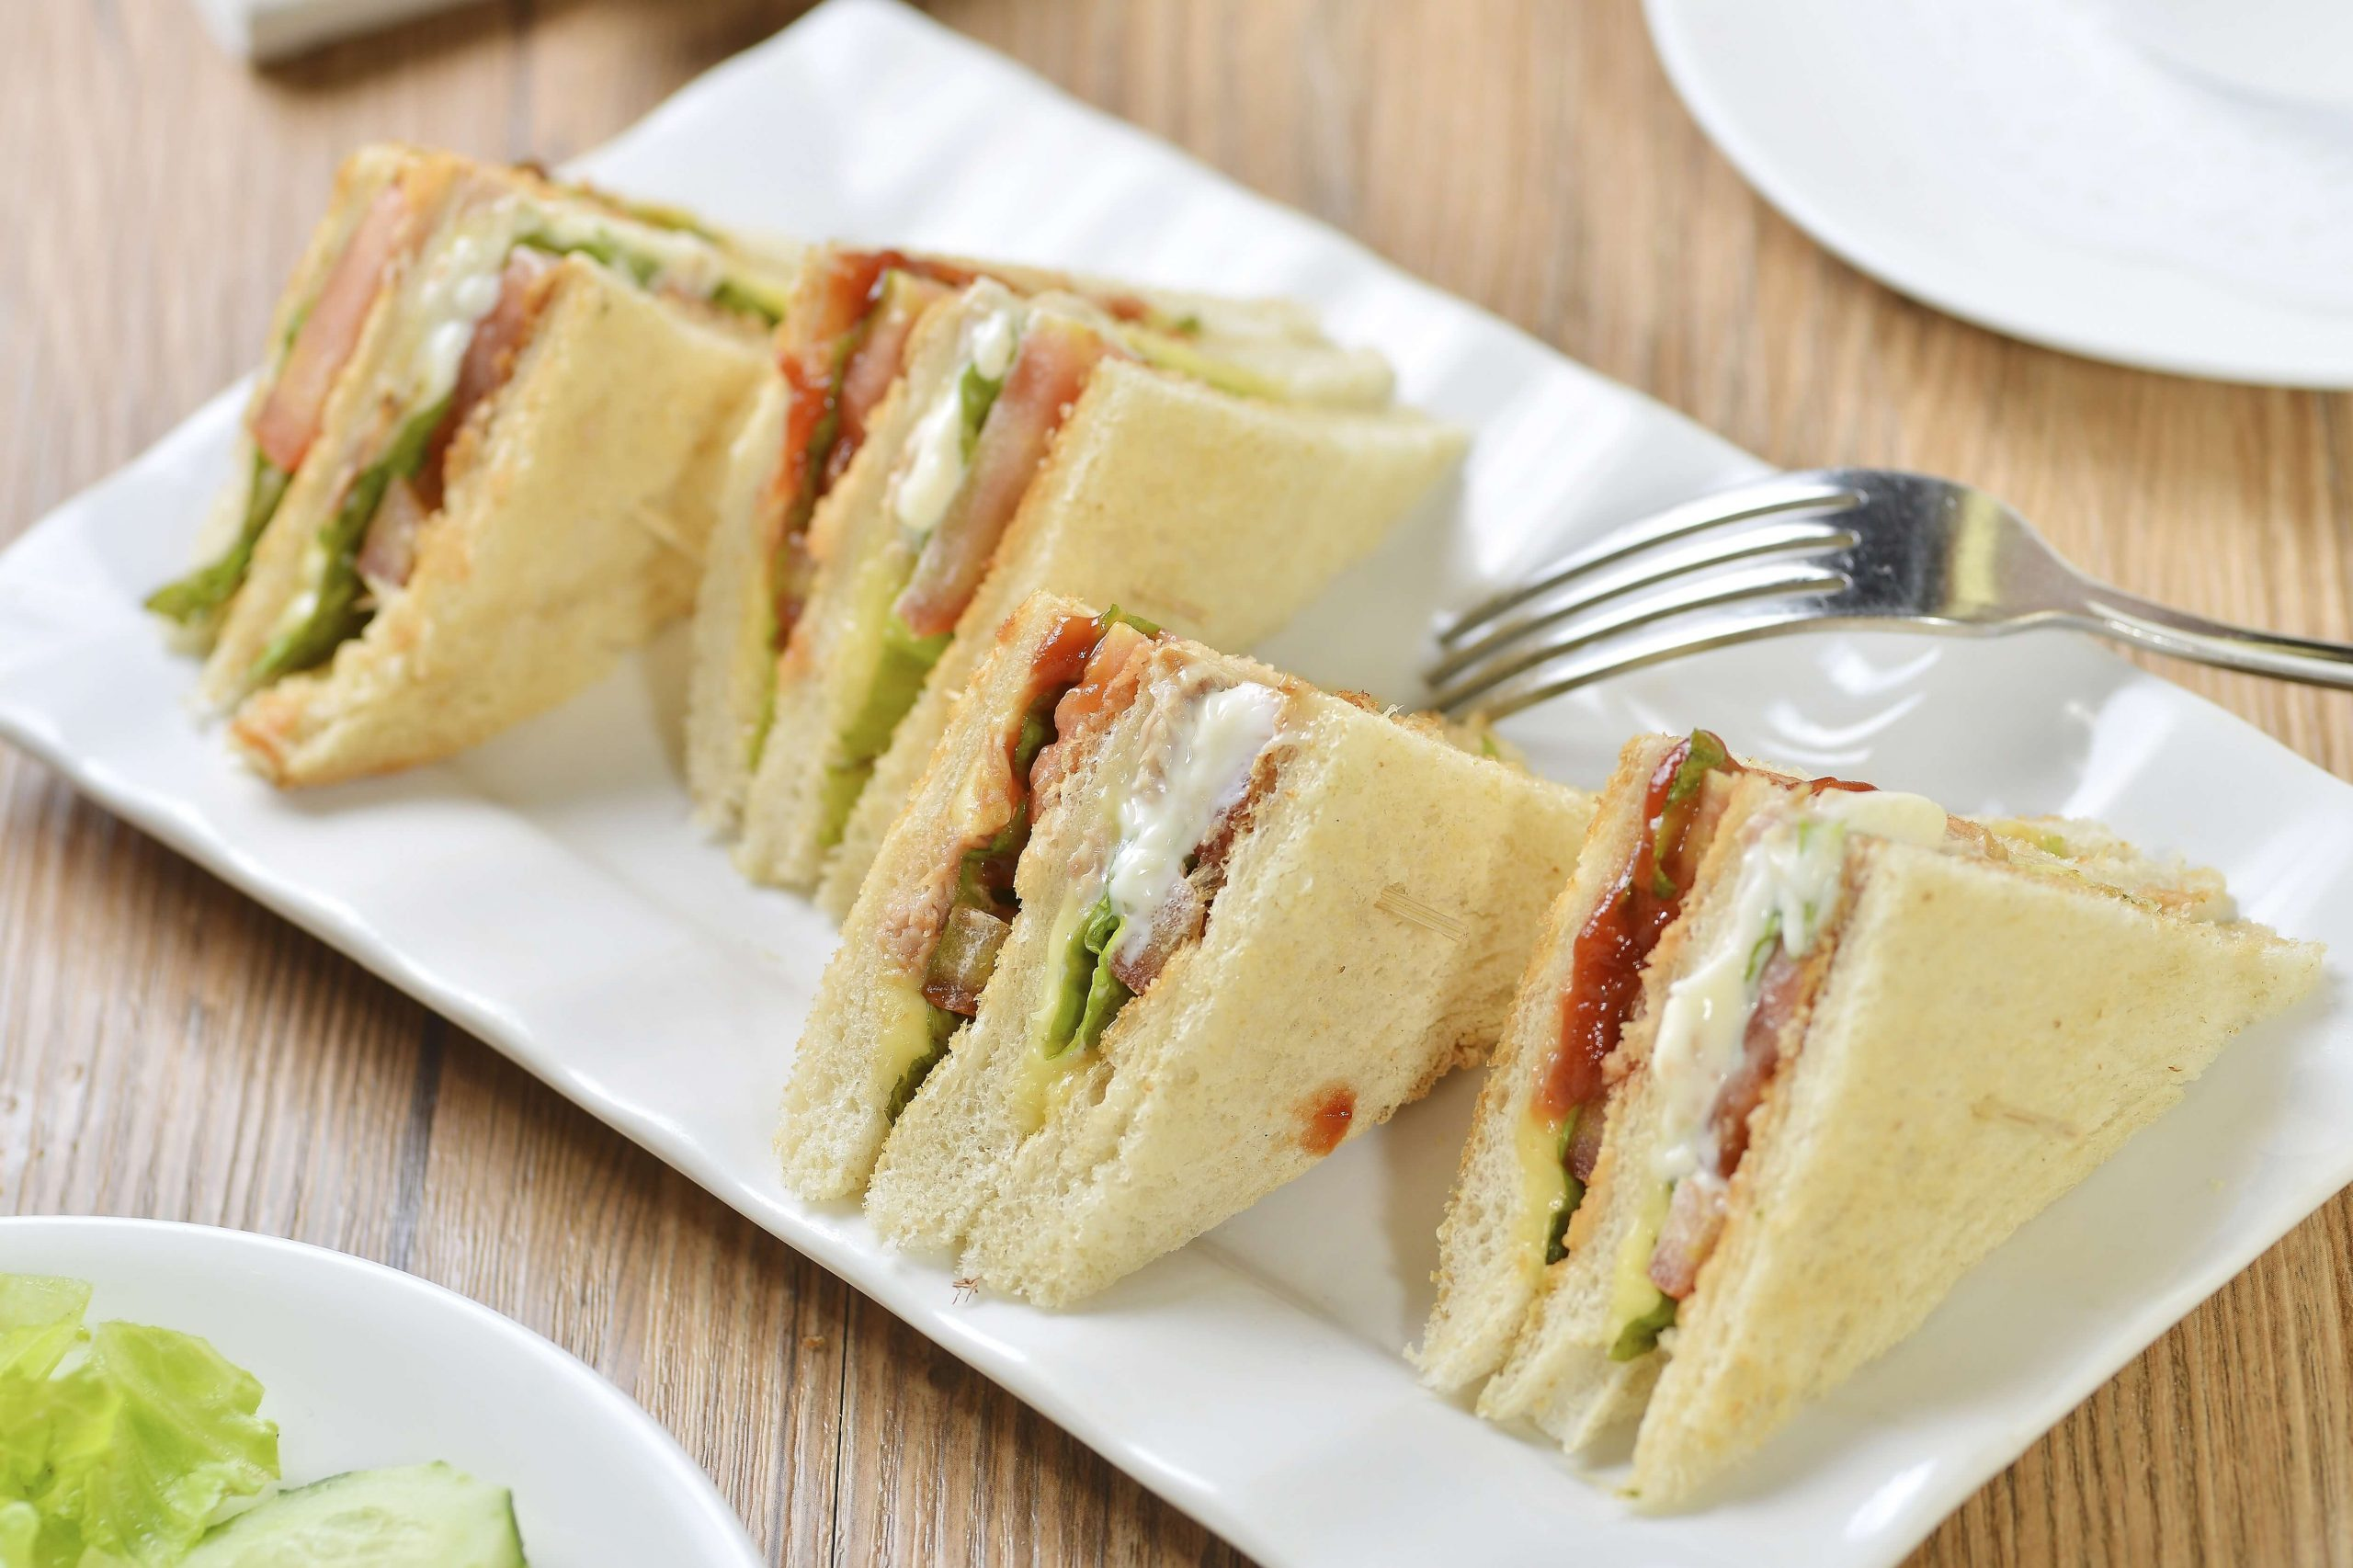 Fish sandwich with pangasius - Your everyday fish